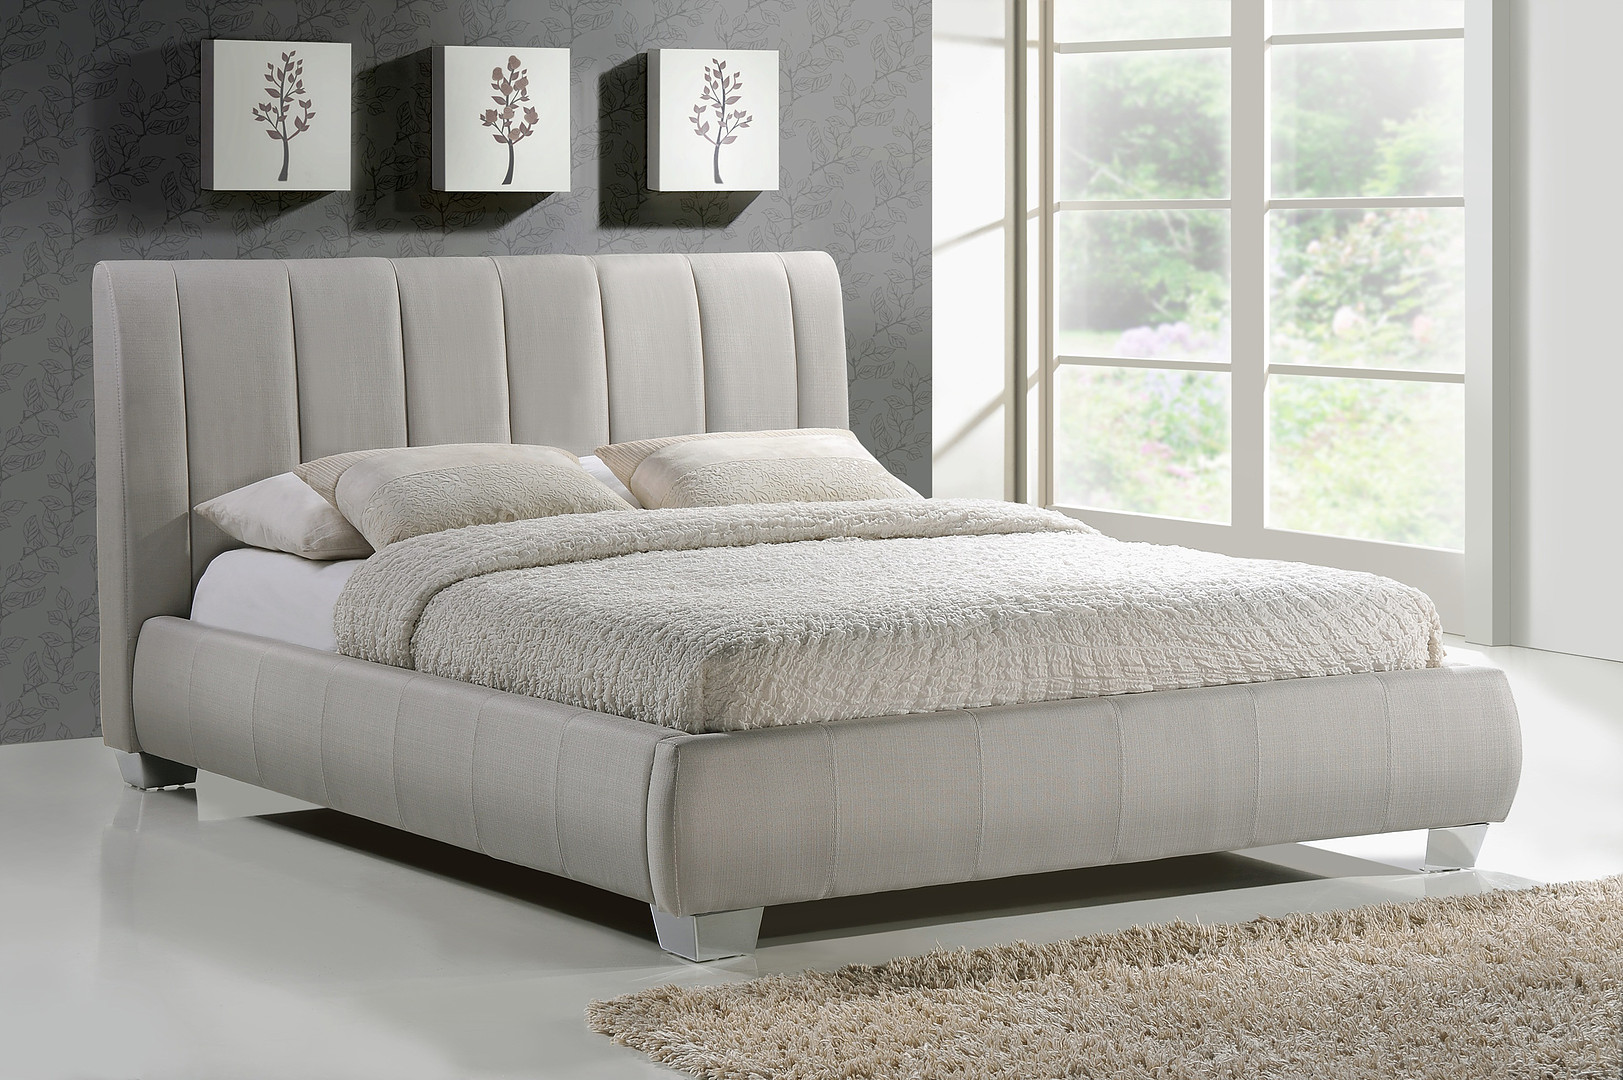 Braunston Fabric Bed Frame in Sand from Time Living £279